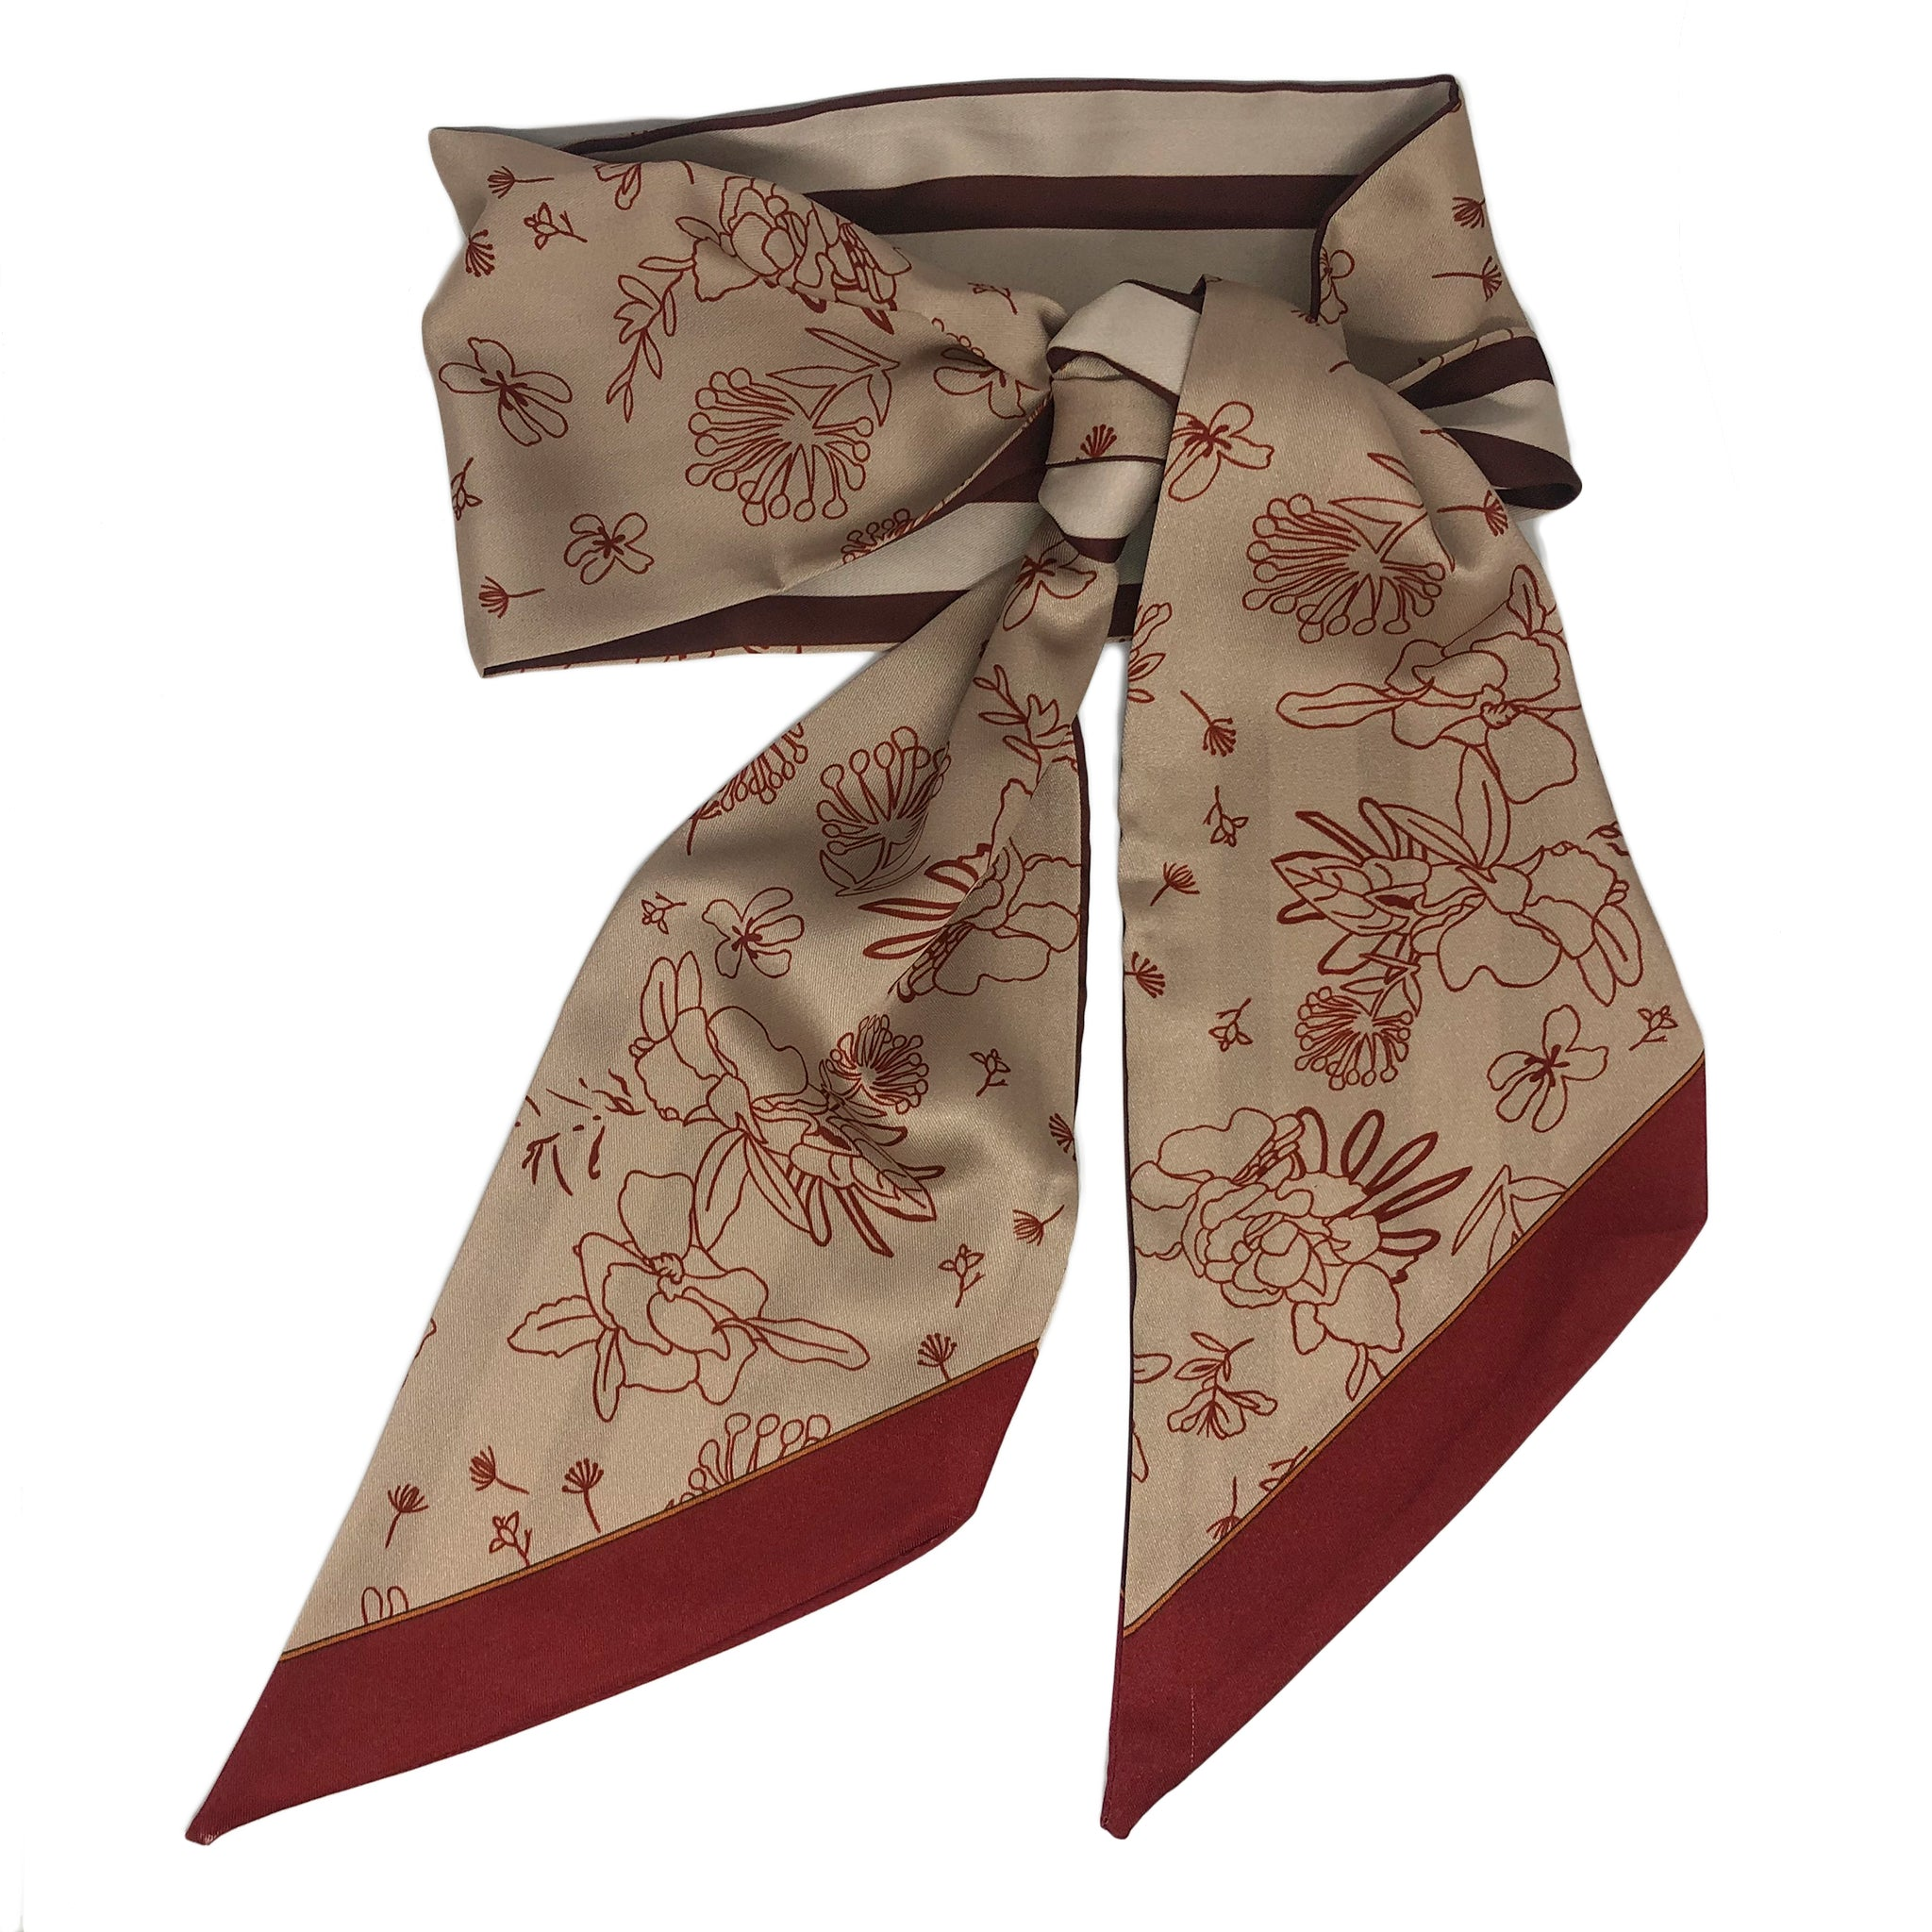 Herricks Scarf. This elegant neck scarf is just perfect to add a touch of difference to your outfit.  Lightweight and silky smooth it has a mushroom background with red floral design on one side and a contrasting stripe on the other.   Measures L 134 cm x W 12.5cm.